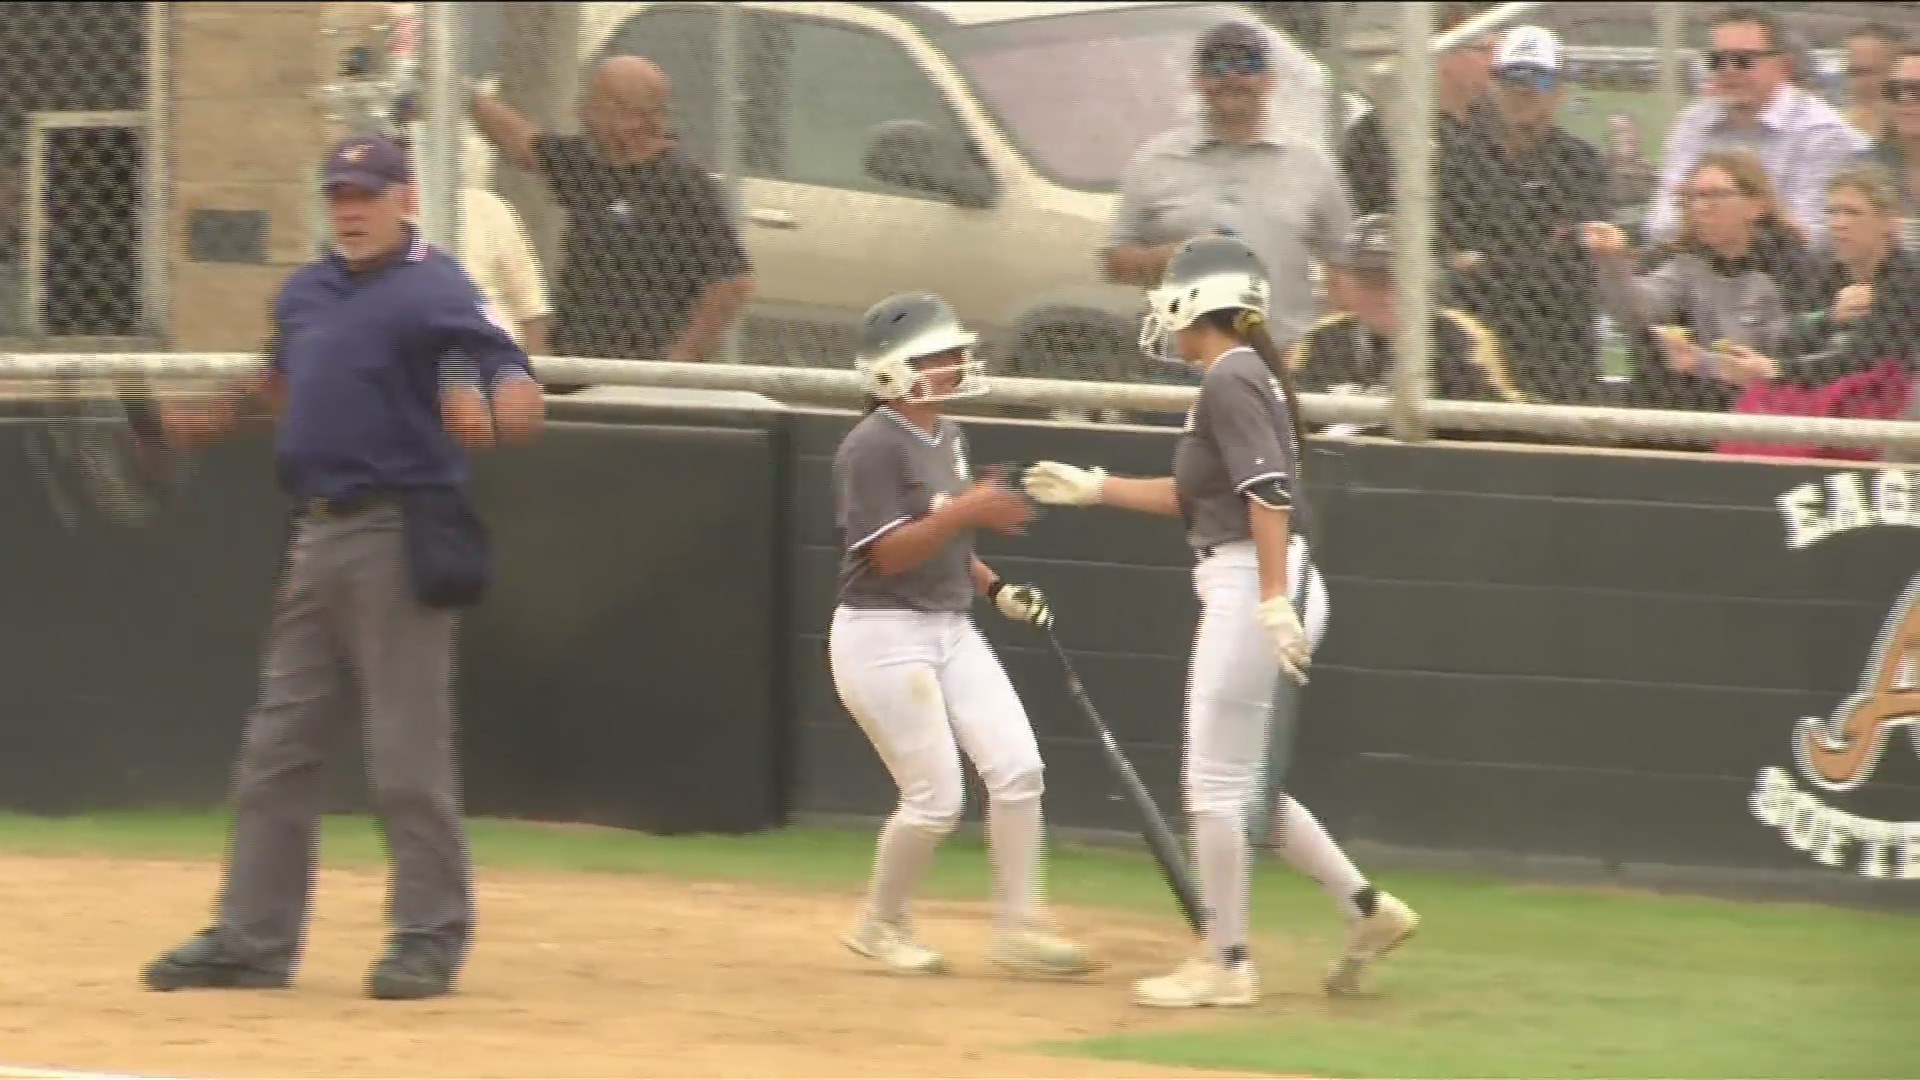 Softball highlights and scores from April 16